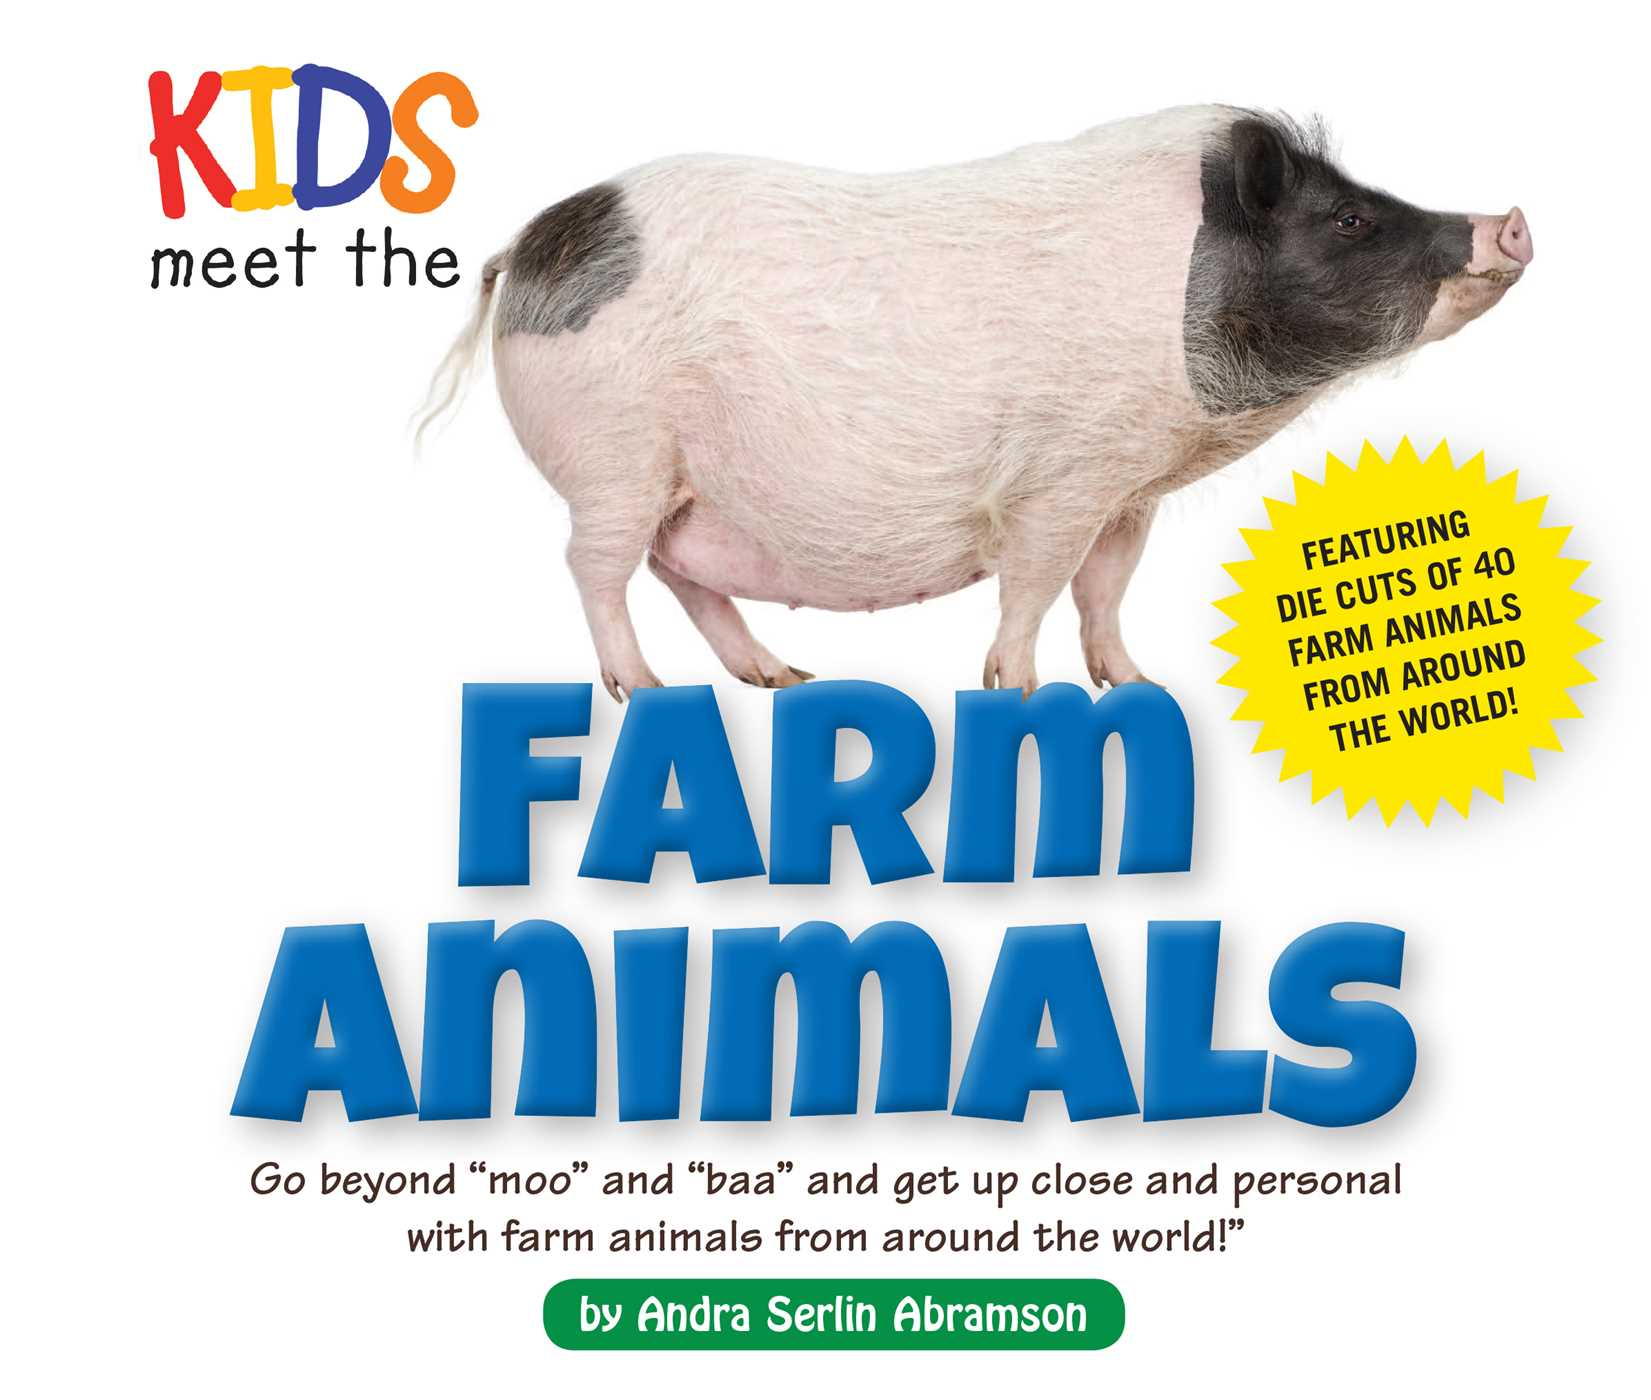 Kids meet the farm animals 9781604335026 hr